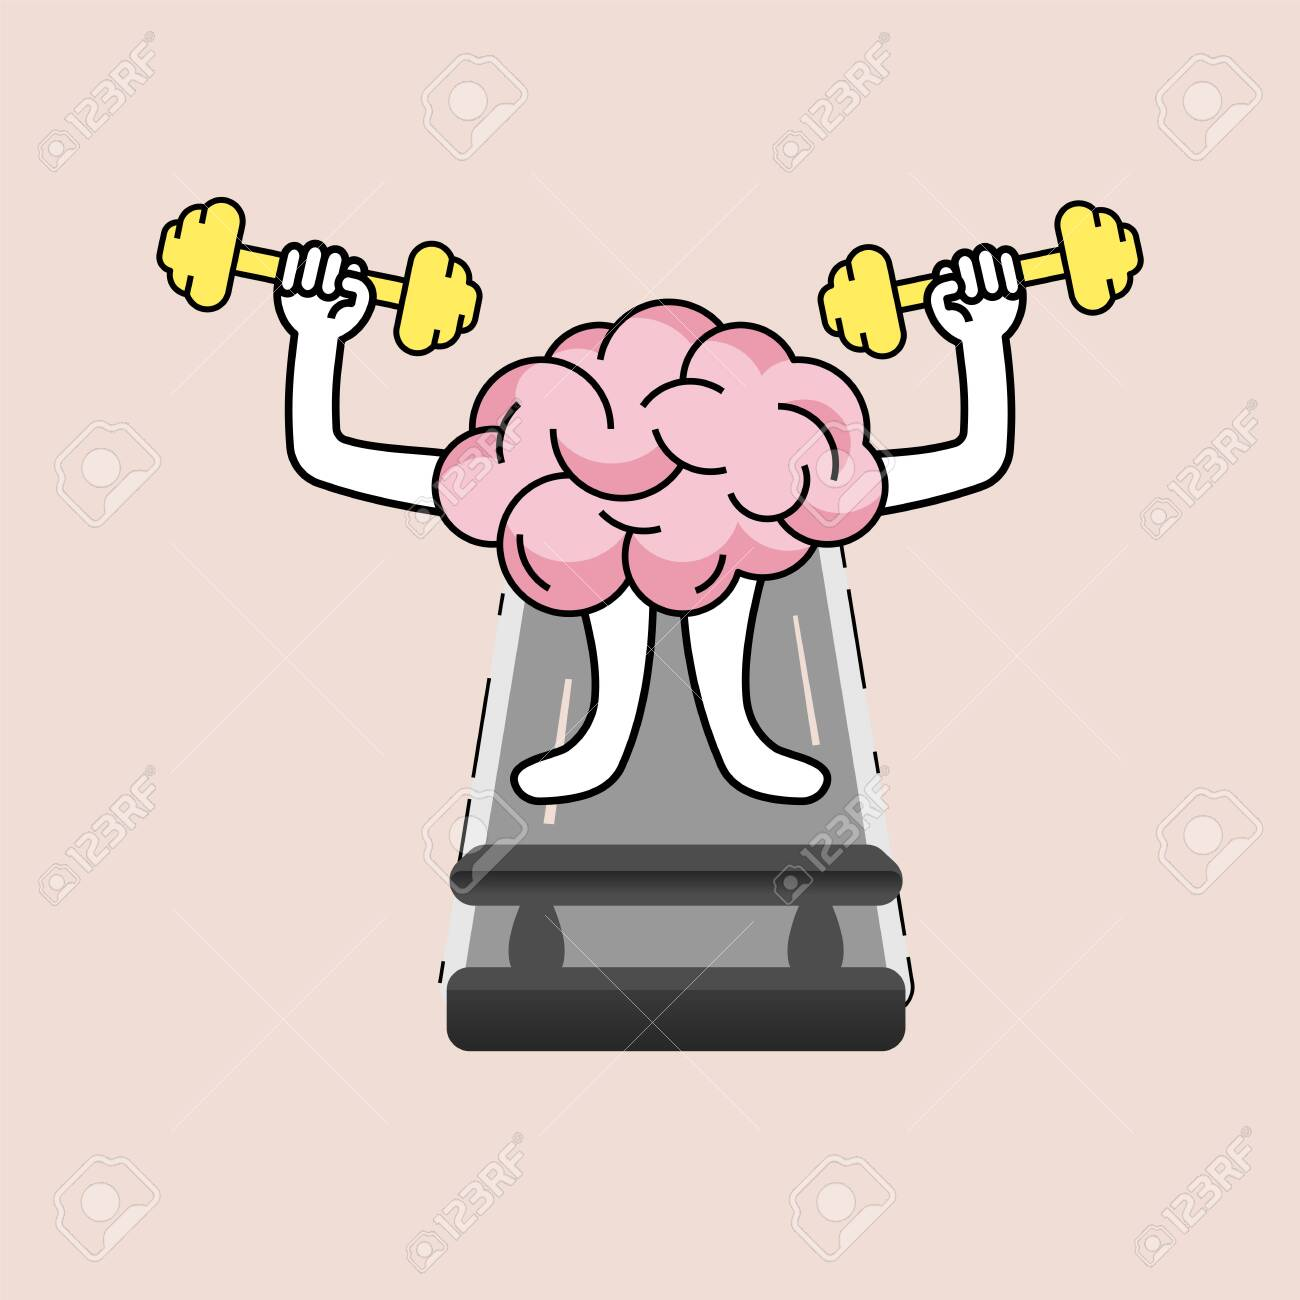 brain cartoon lifting dumbell and walking on treadmill developing royalty free cliparts vectors and stock illustration image 152039441 123rf com